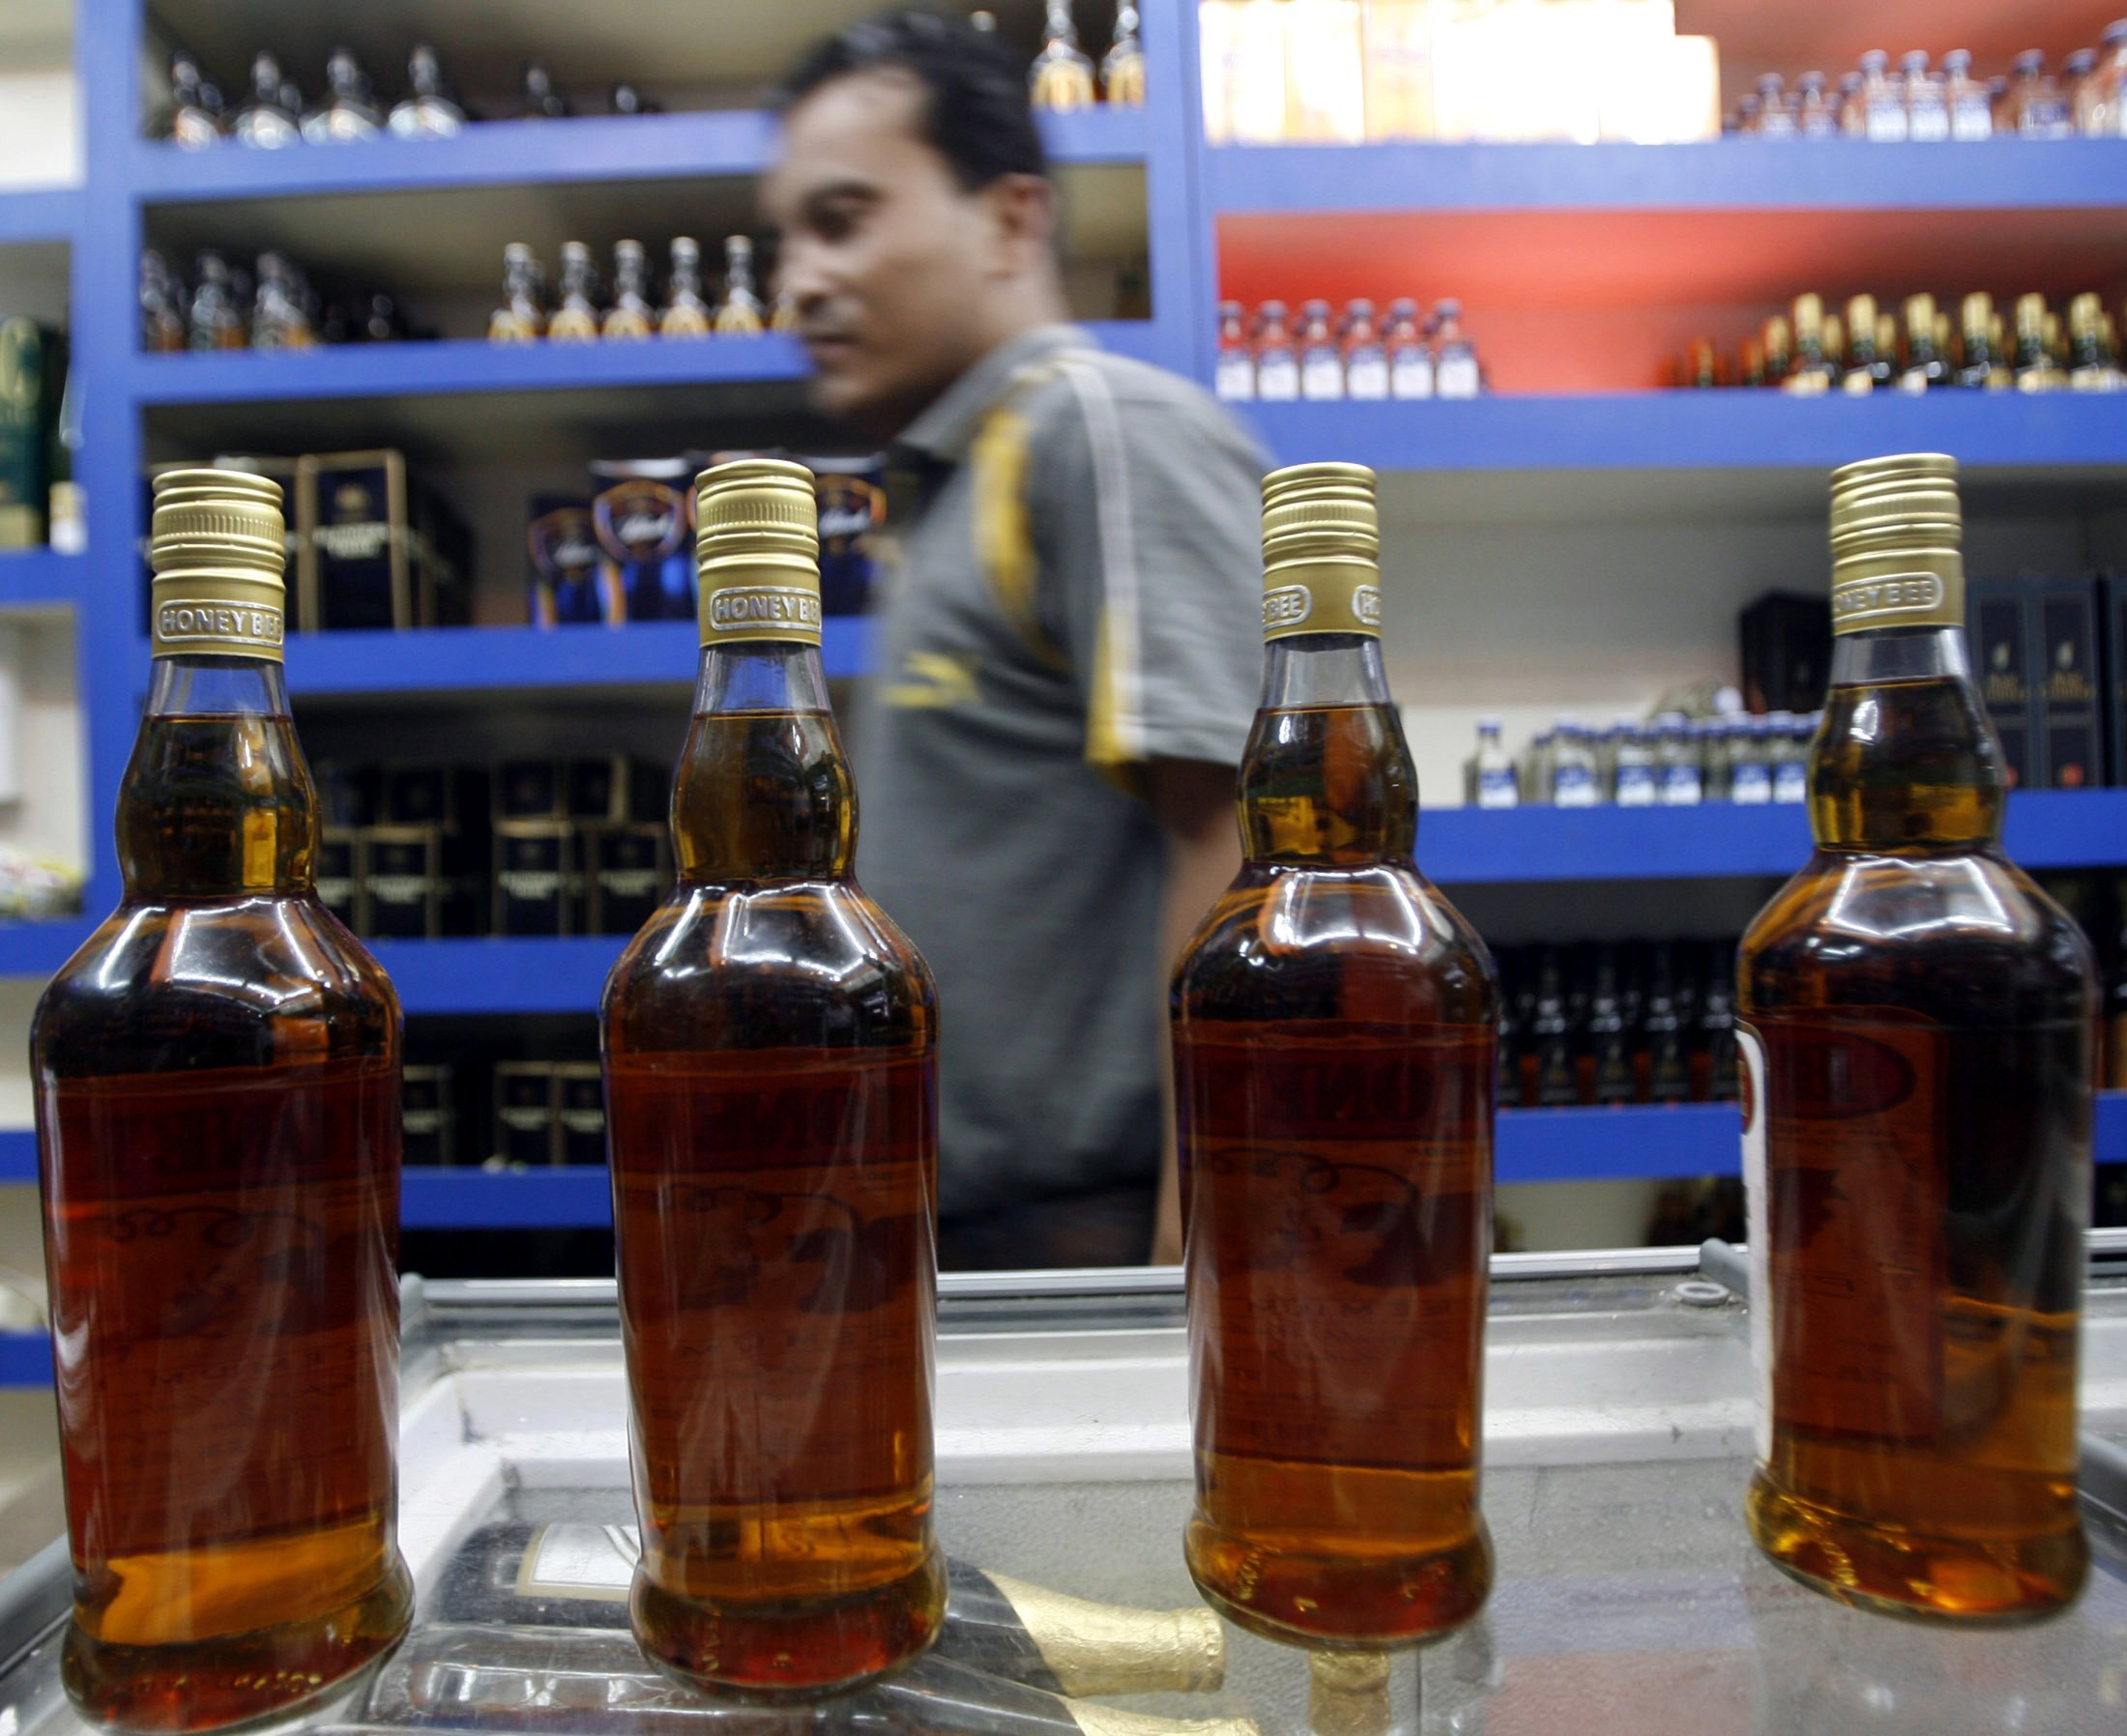 A city just banned ALL booze by accident